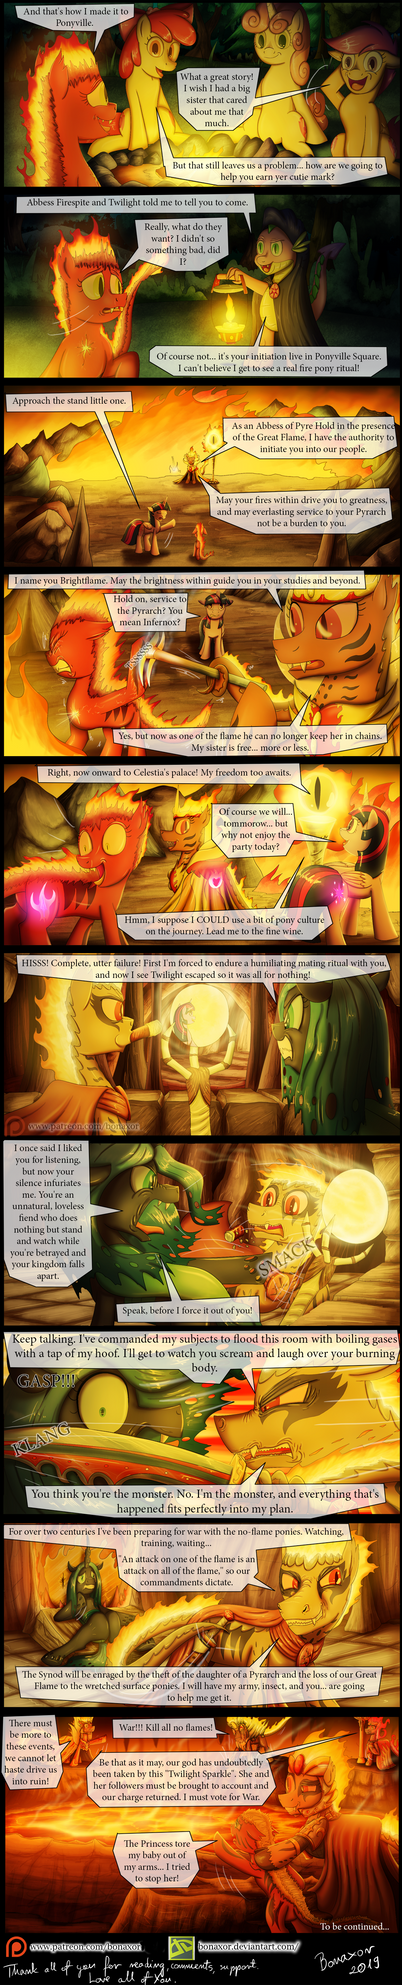 The Greater Flame Epilogue #1: Rising Fires